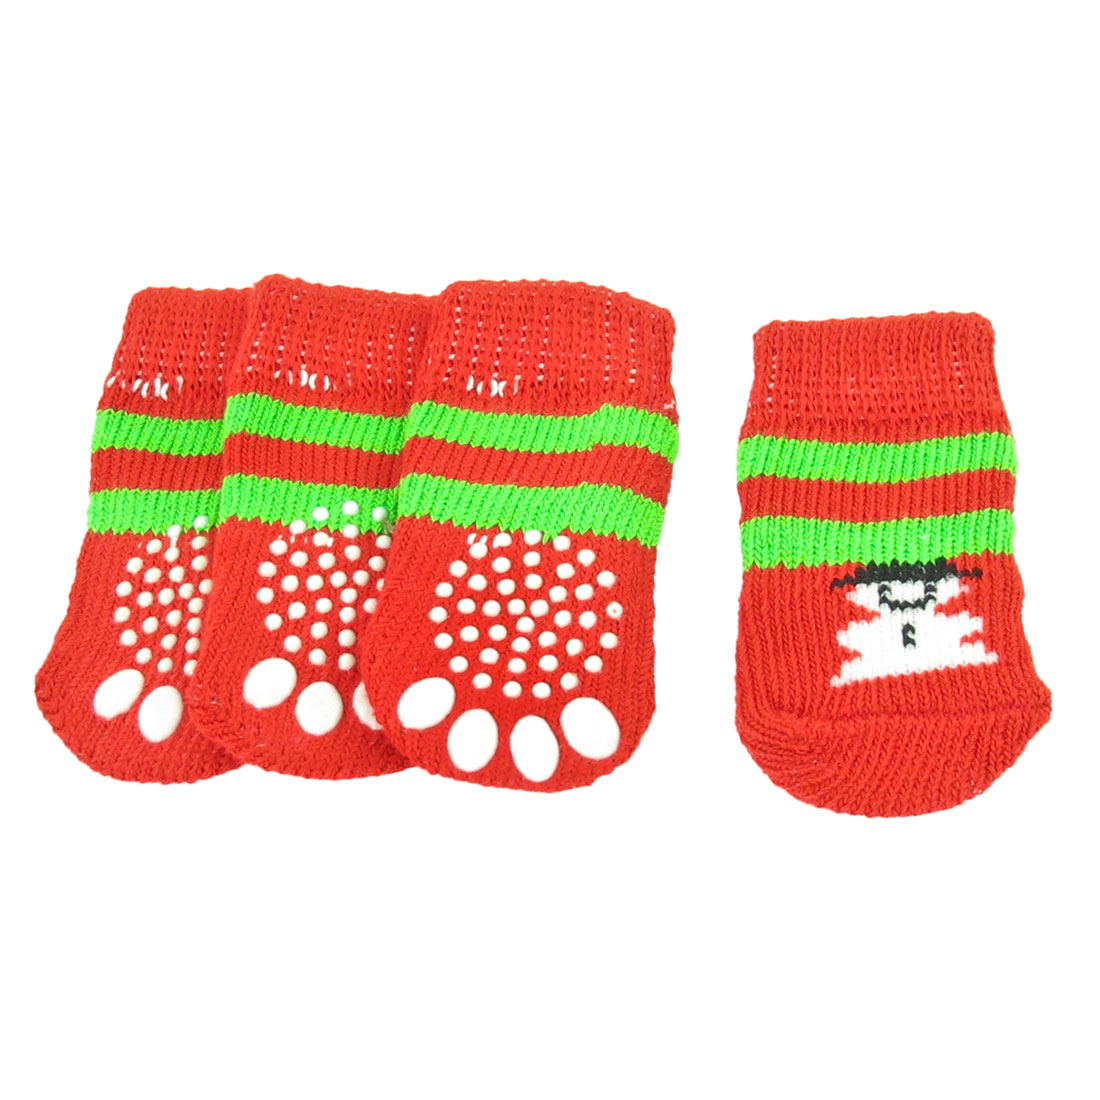 Unique Bargains 2 Pairs Warm Anti Slip Design Knitted Pet Dog Puppy Socks Red Green Size S